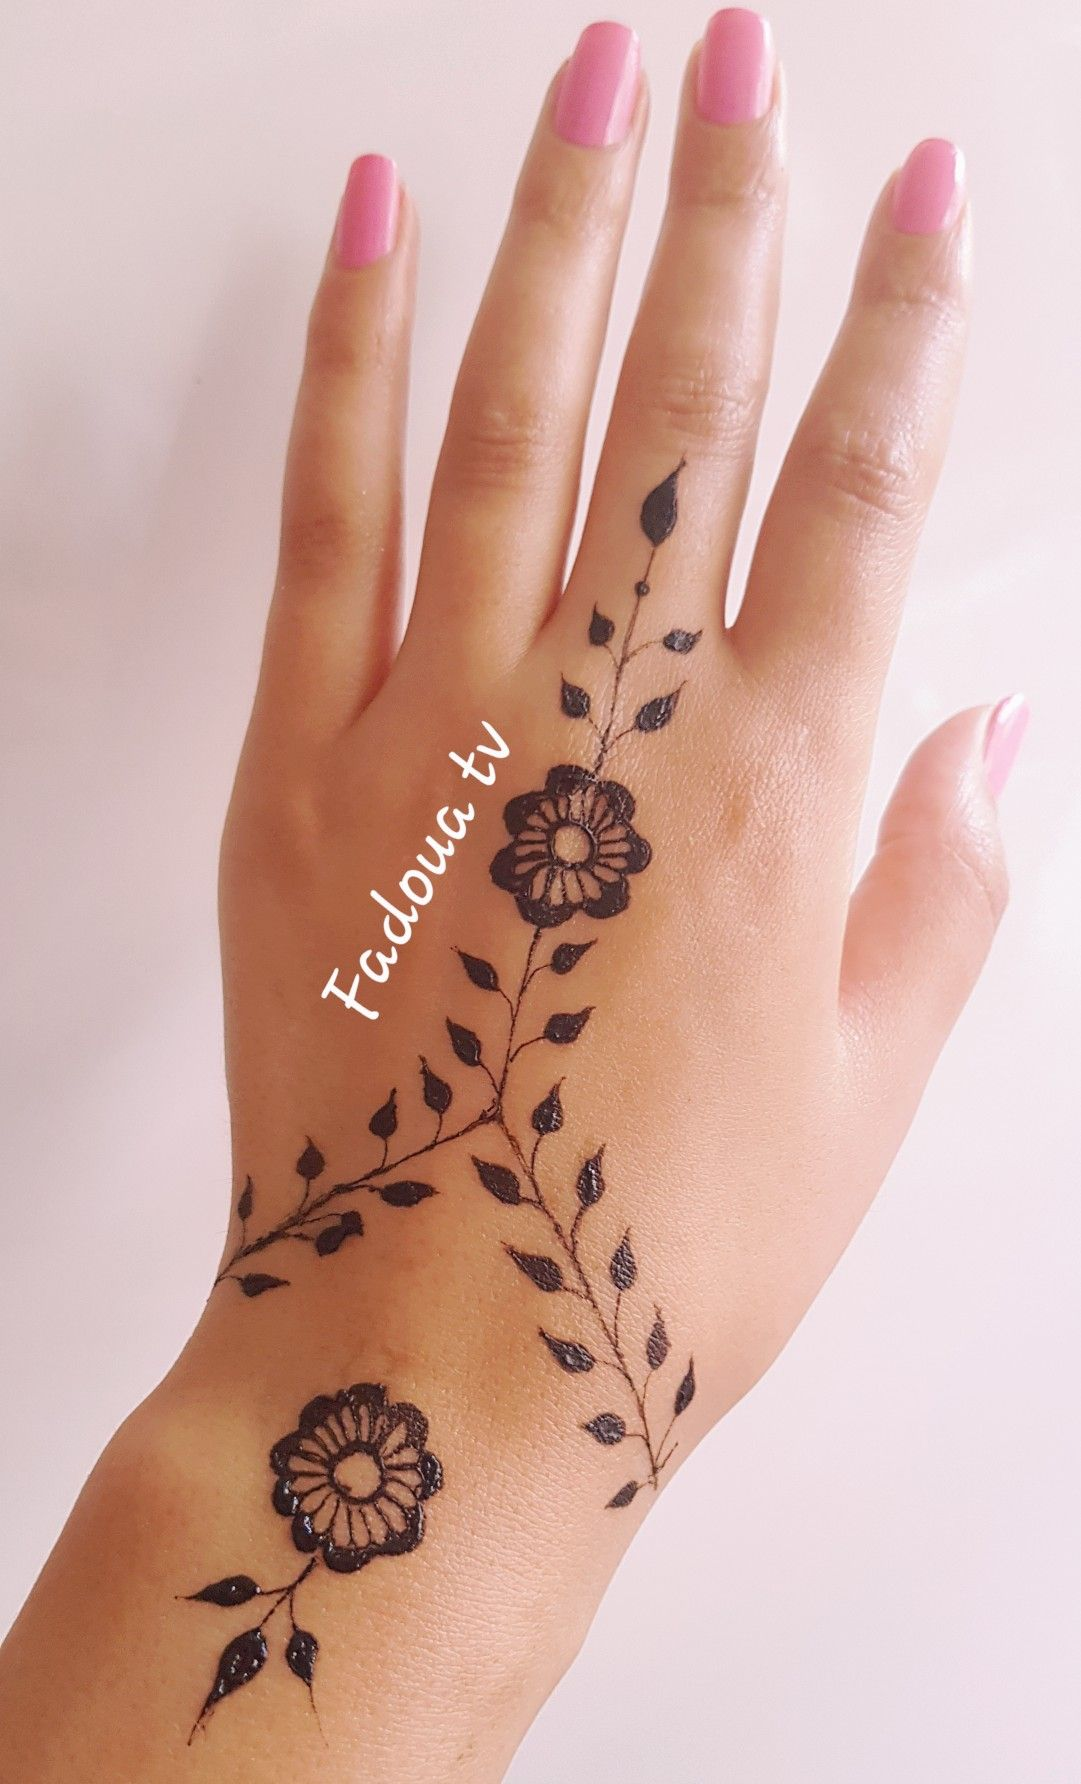 Pin By Patata 513 On Diy Henna Henna Tattoo Hand Henna Diy Henna